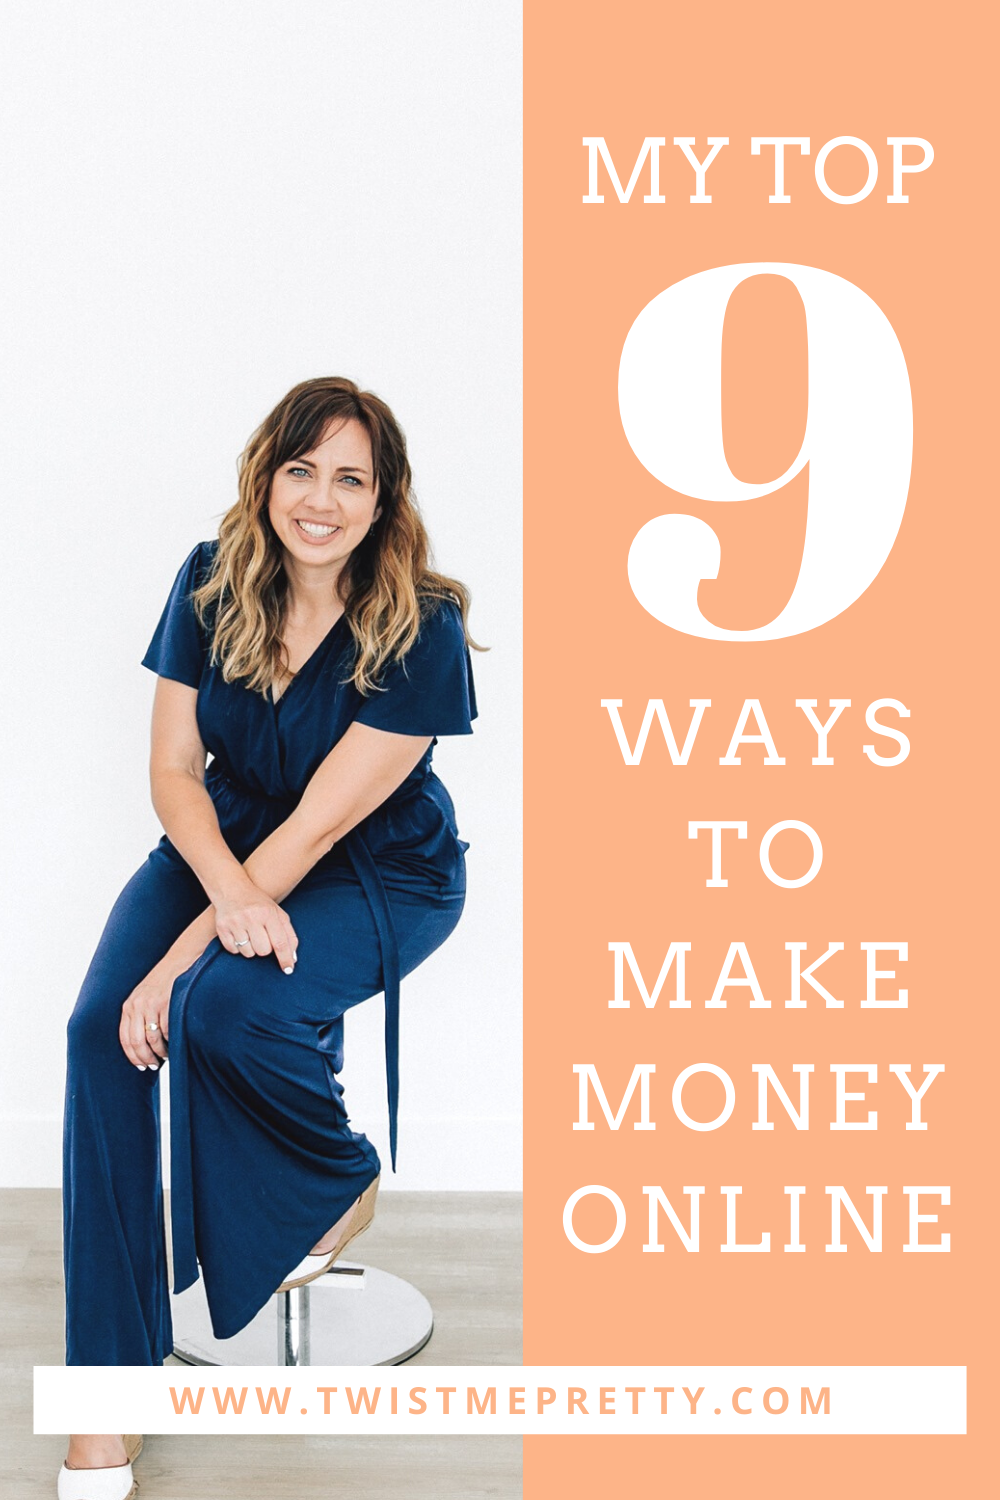 My top 9 ways to make money online while staying home with my kids. www.TwistMePretty.com